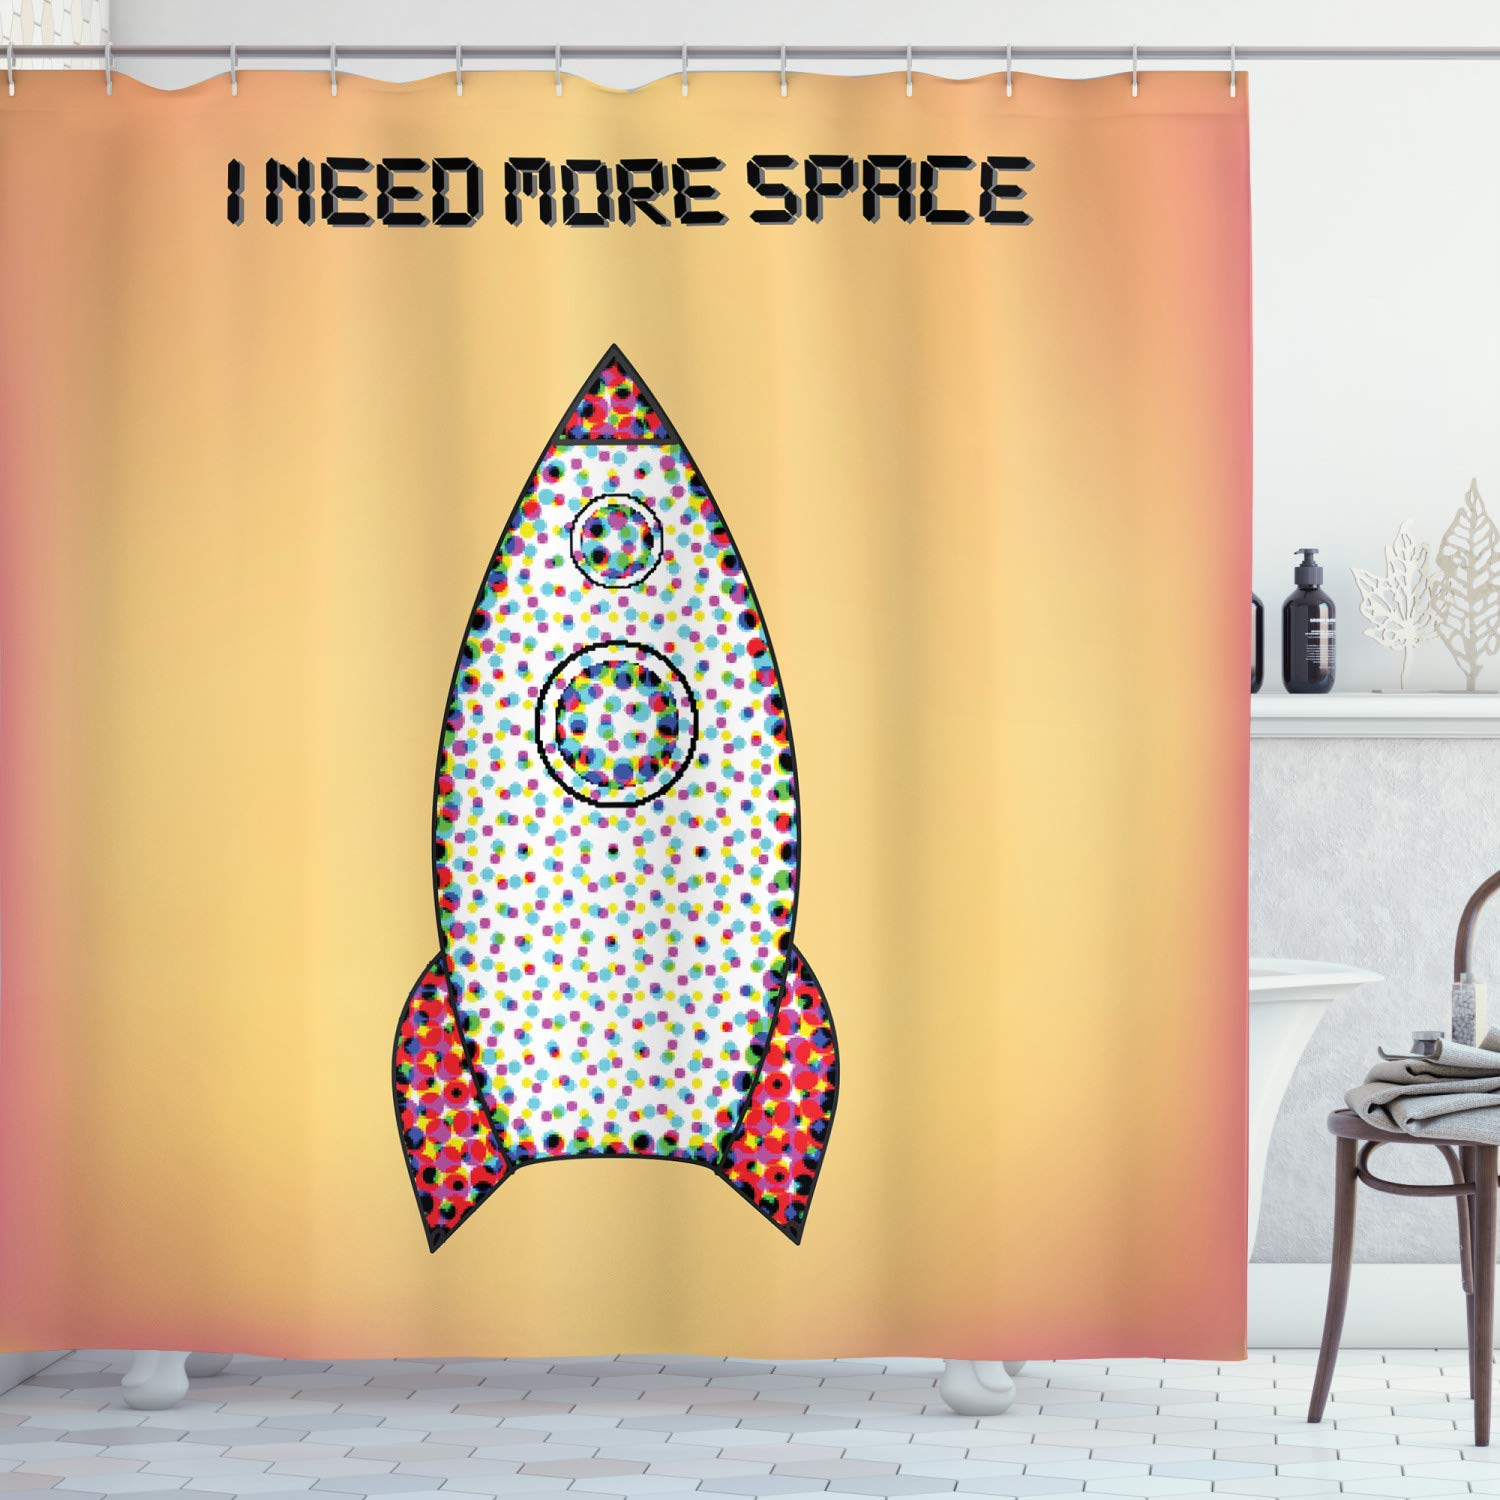 """Ambesonne Vintage Shower Curtain, Words with Radiant Tone Futuristic Spaceship Rocket Moon Cosmos Universe Humor Art, Cloth Fabric Bathroom Decor Set with Hooks, 70"""" Long, Yellow Coral"""